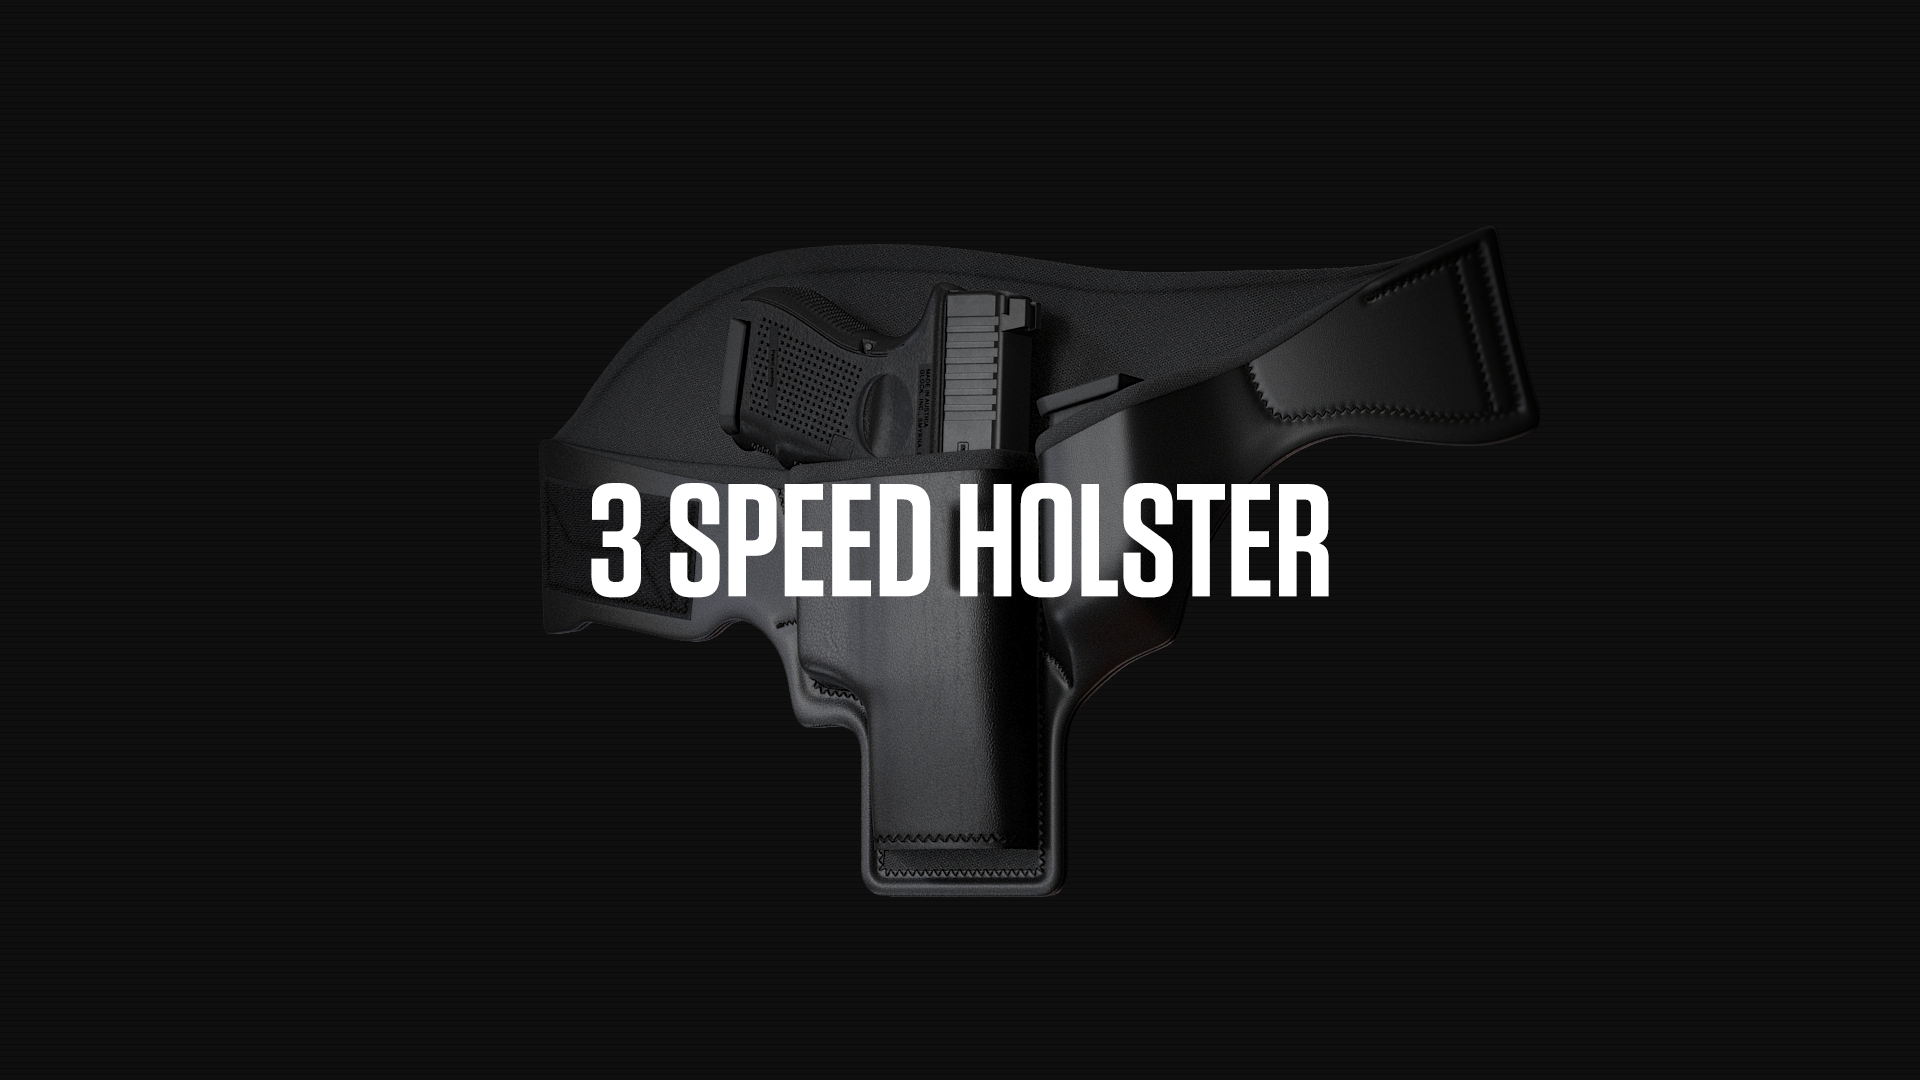 3 Speed Holster Website Design Preview